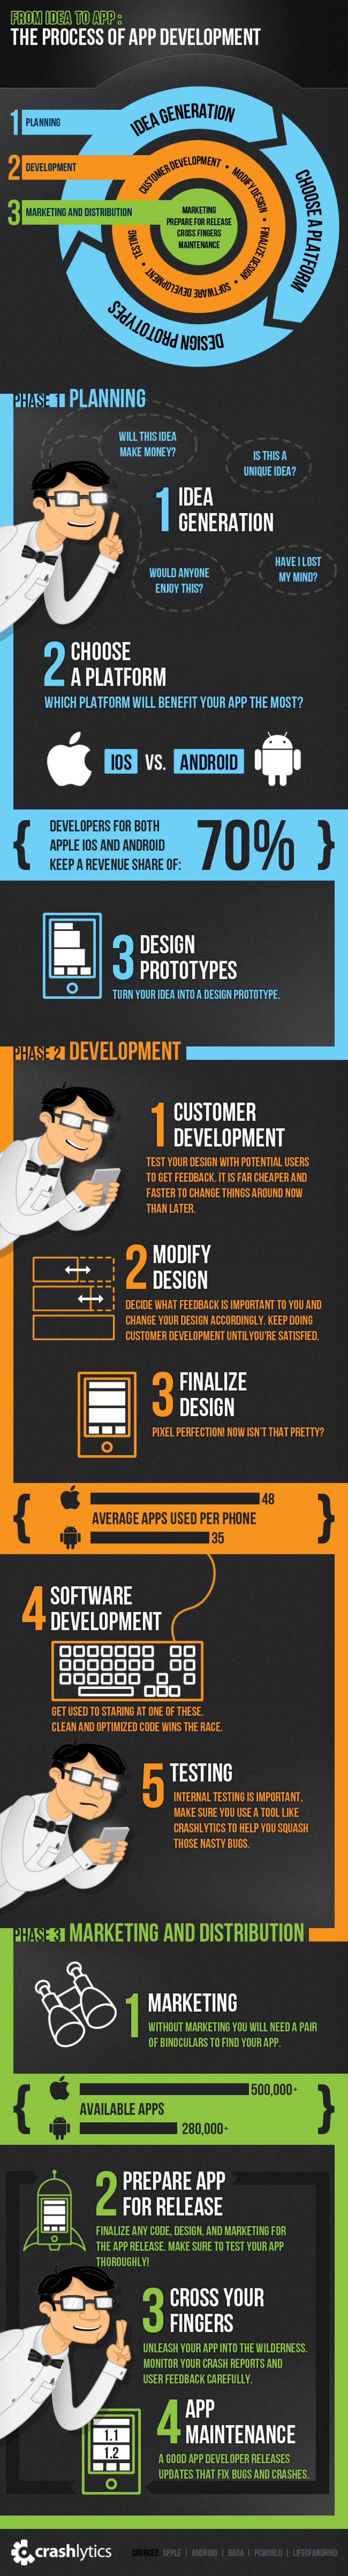 From Idea to App: The Process of App Development Infographic